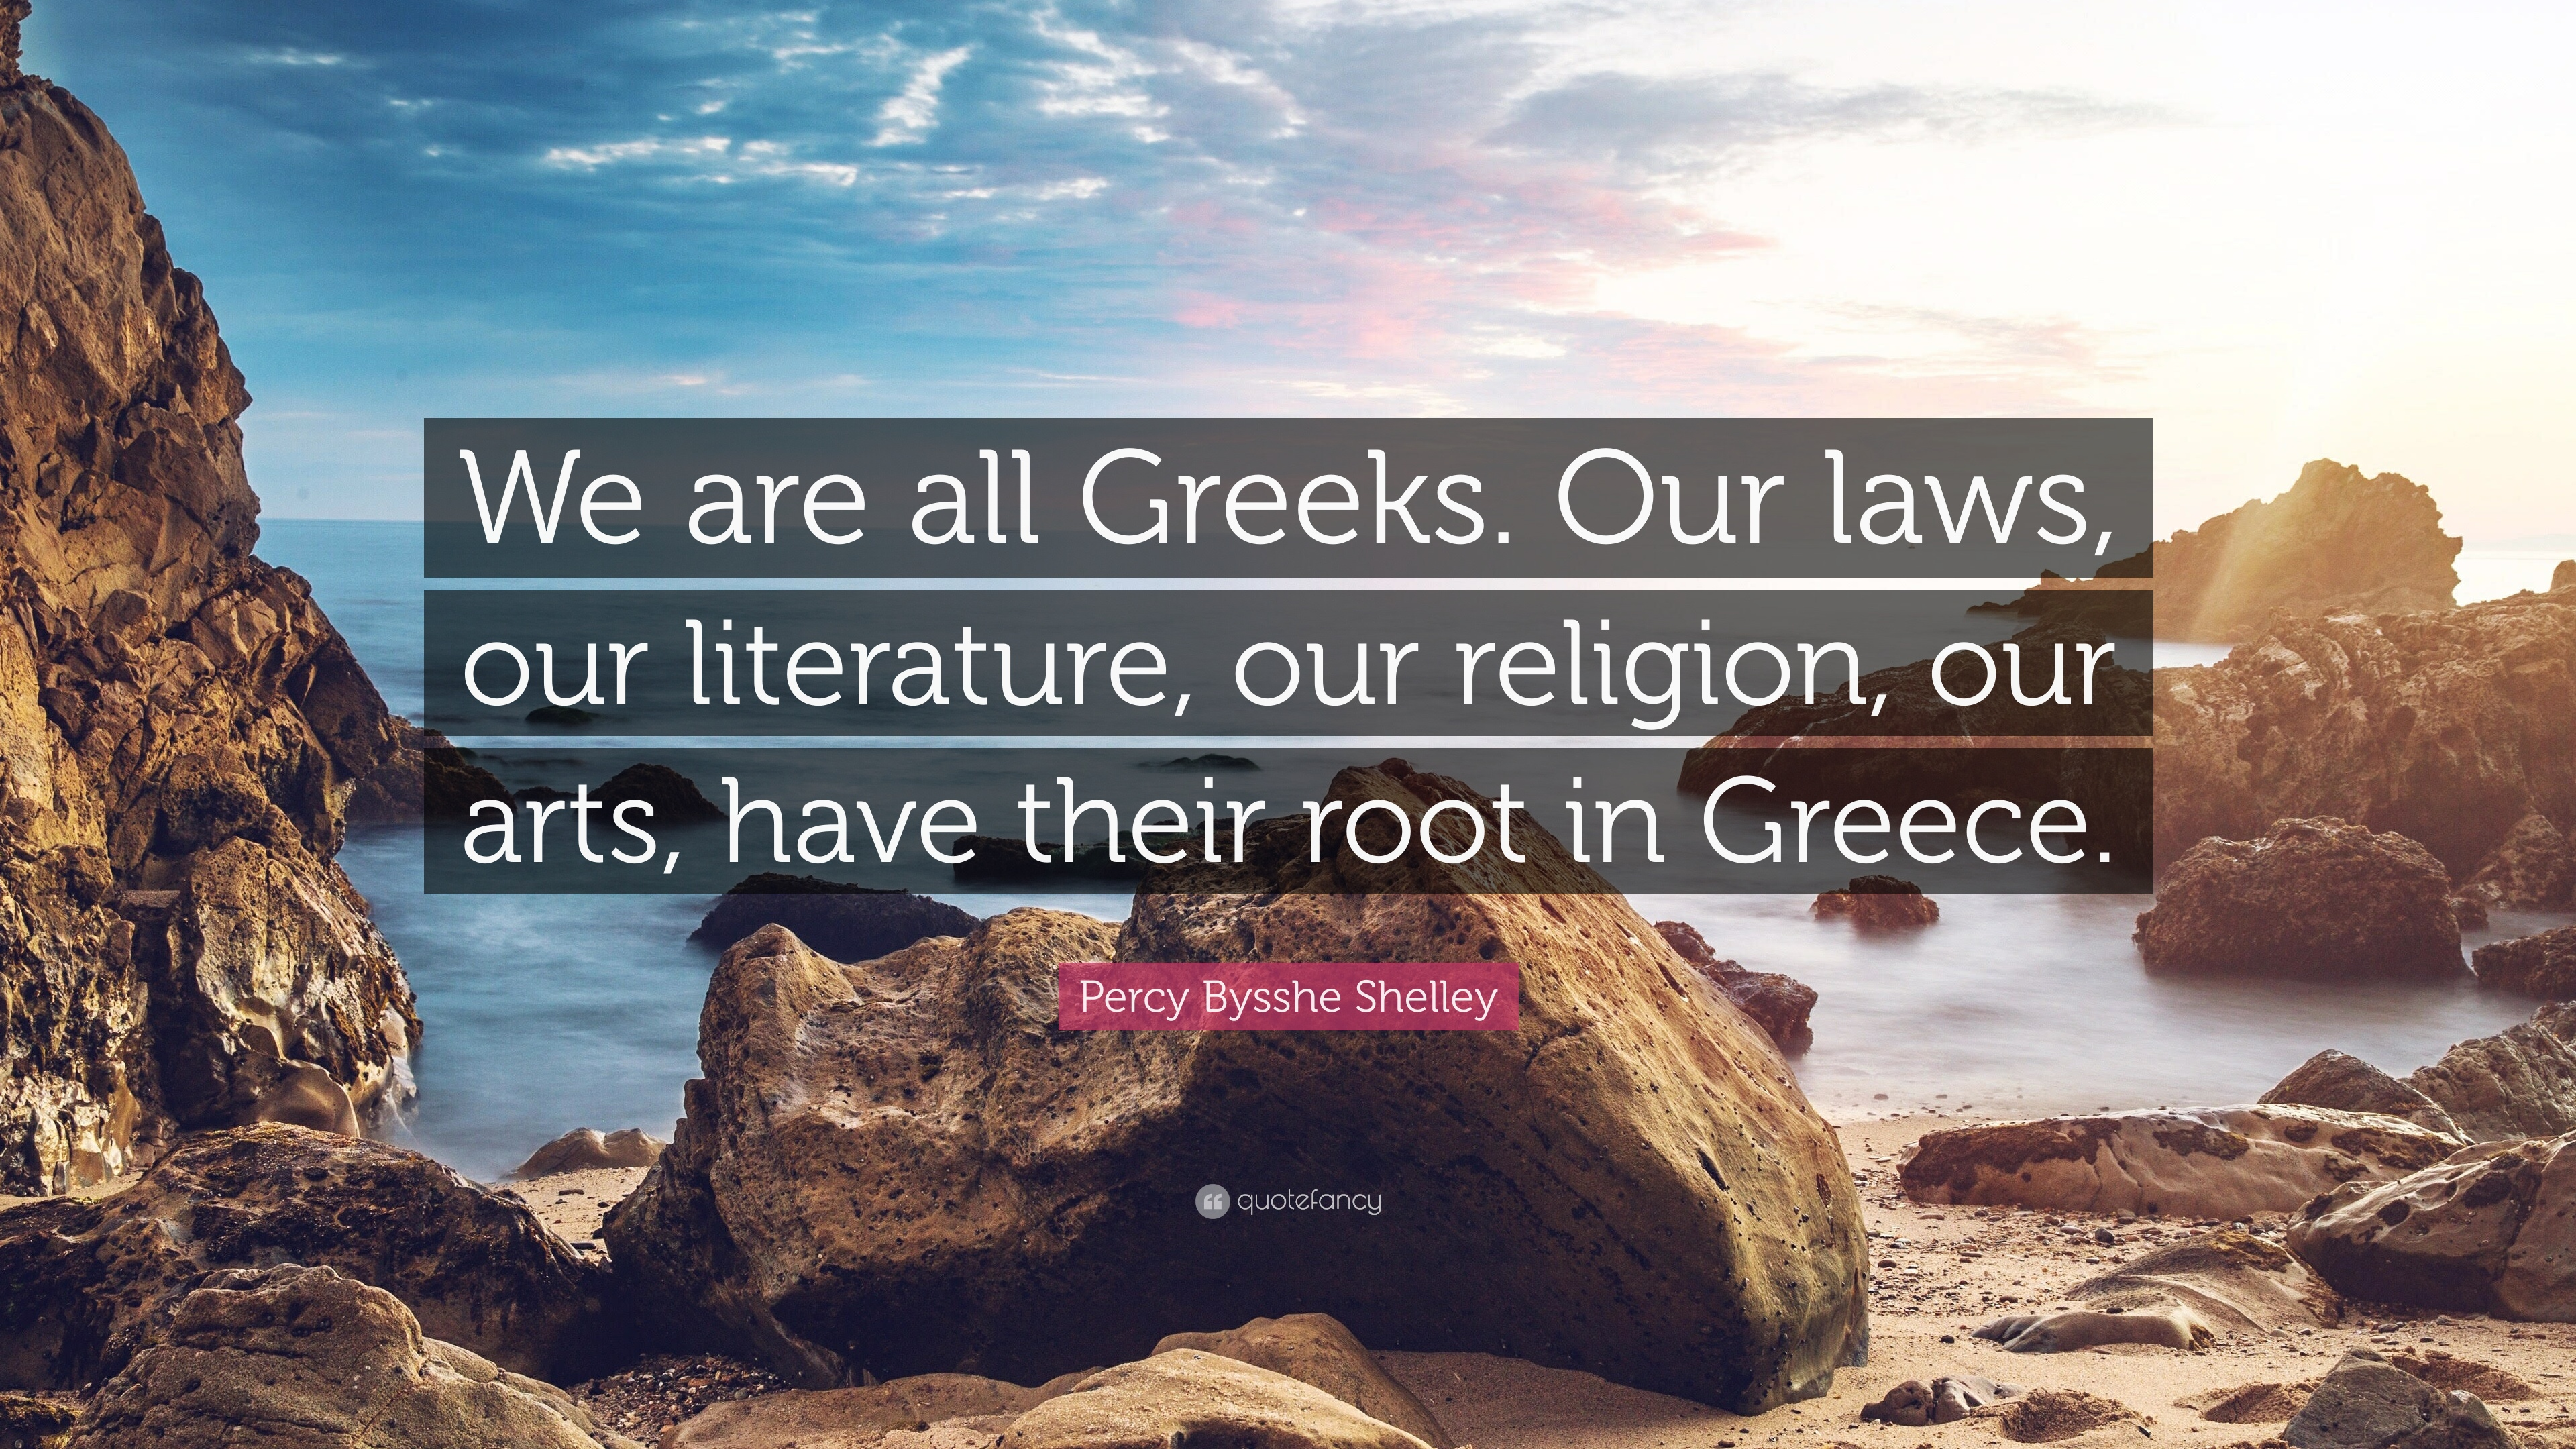 Percy Bysshe Shelley Quote We are all Greeks Our laws our literature  our religion our arts have their root in Greece 11 wallpapers -  Quotefancy